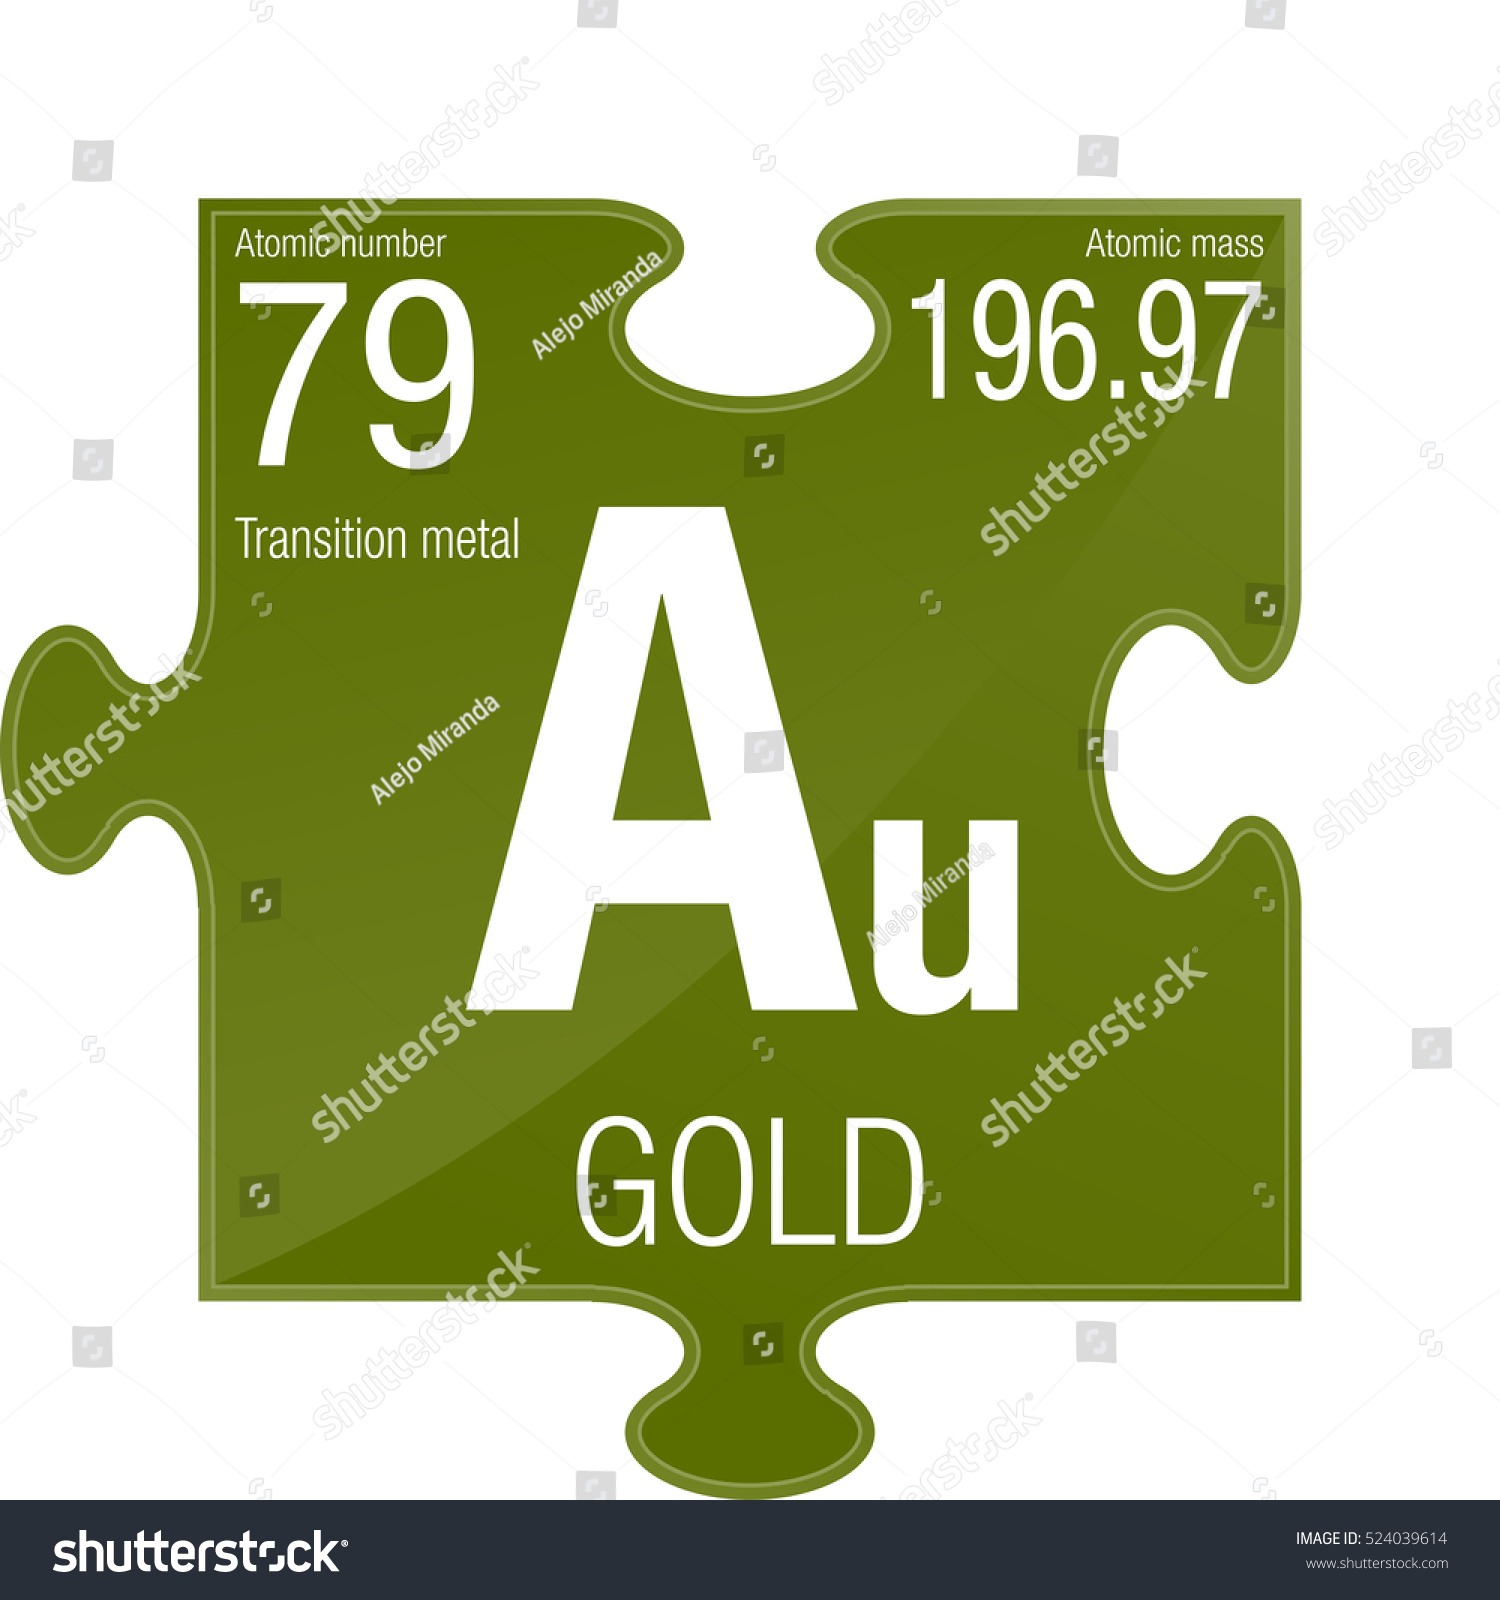 Chemical symbol for gold on periodic table image collections symbol for gold on periodic table image collections periodic chemical symbol for gold on periodic table gamestrikefo Gallery